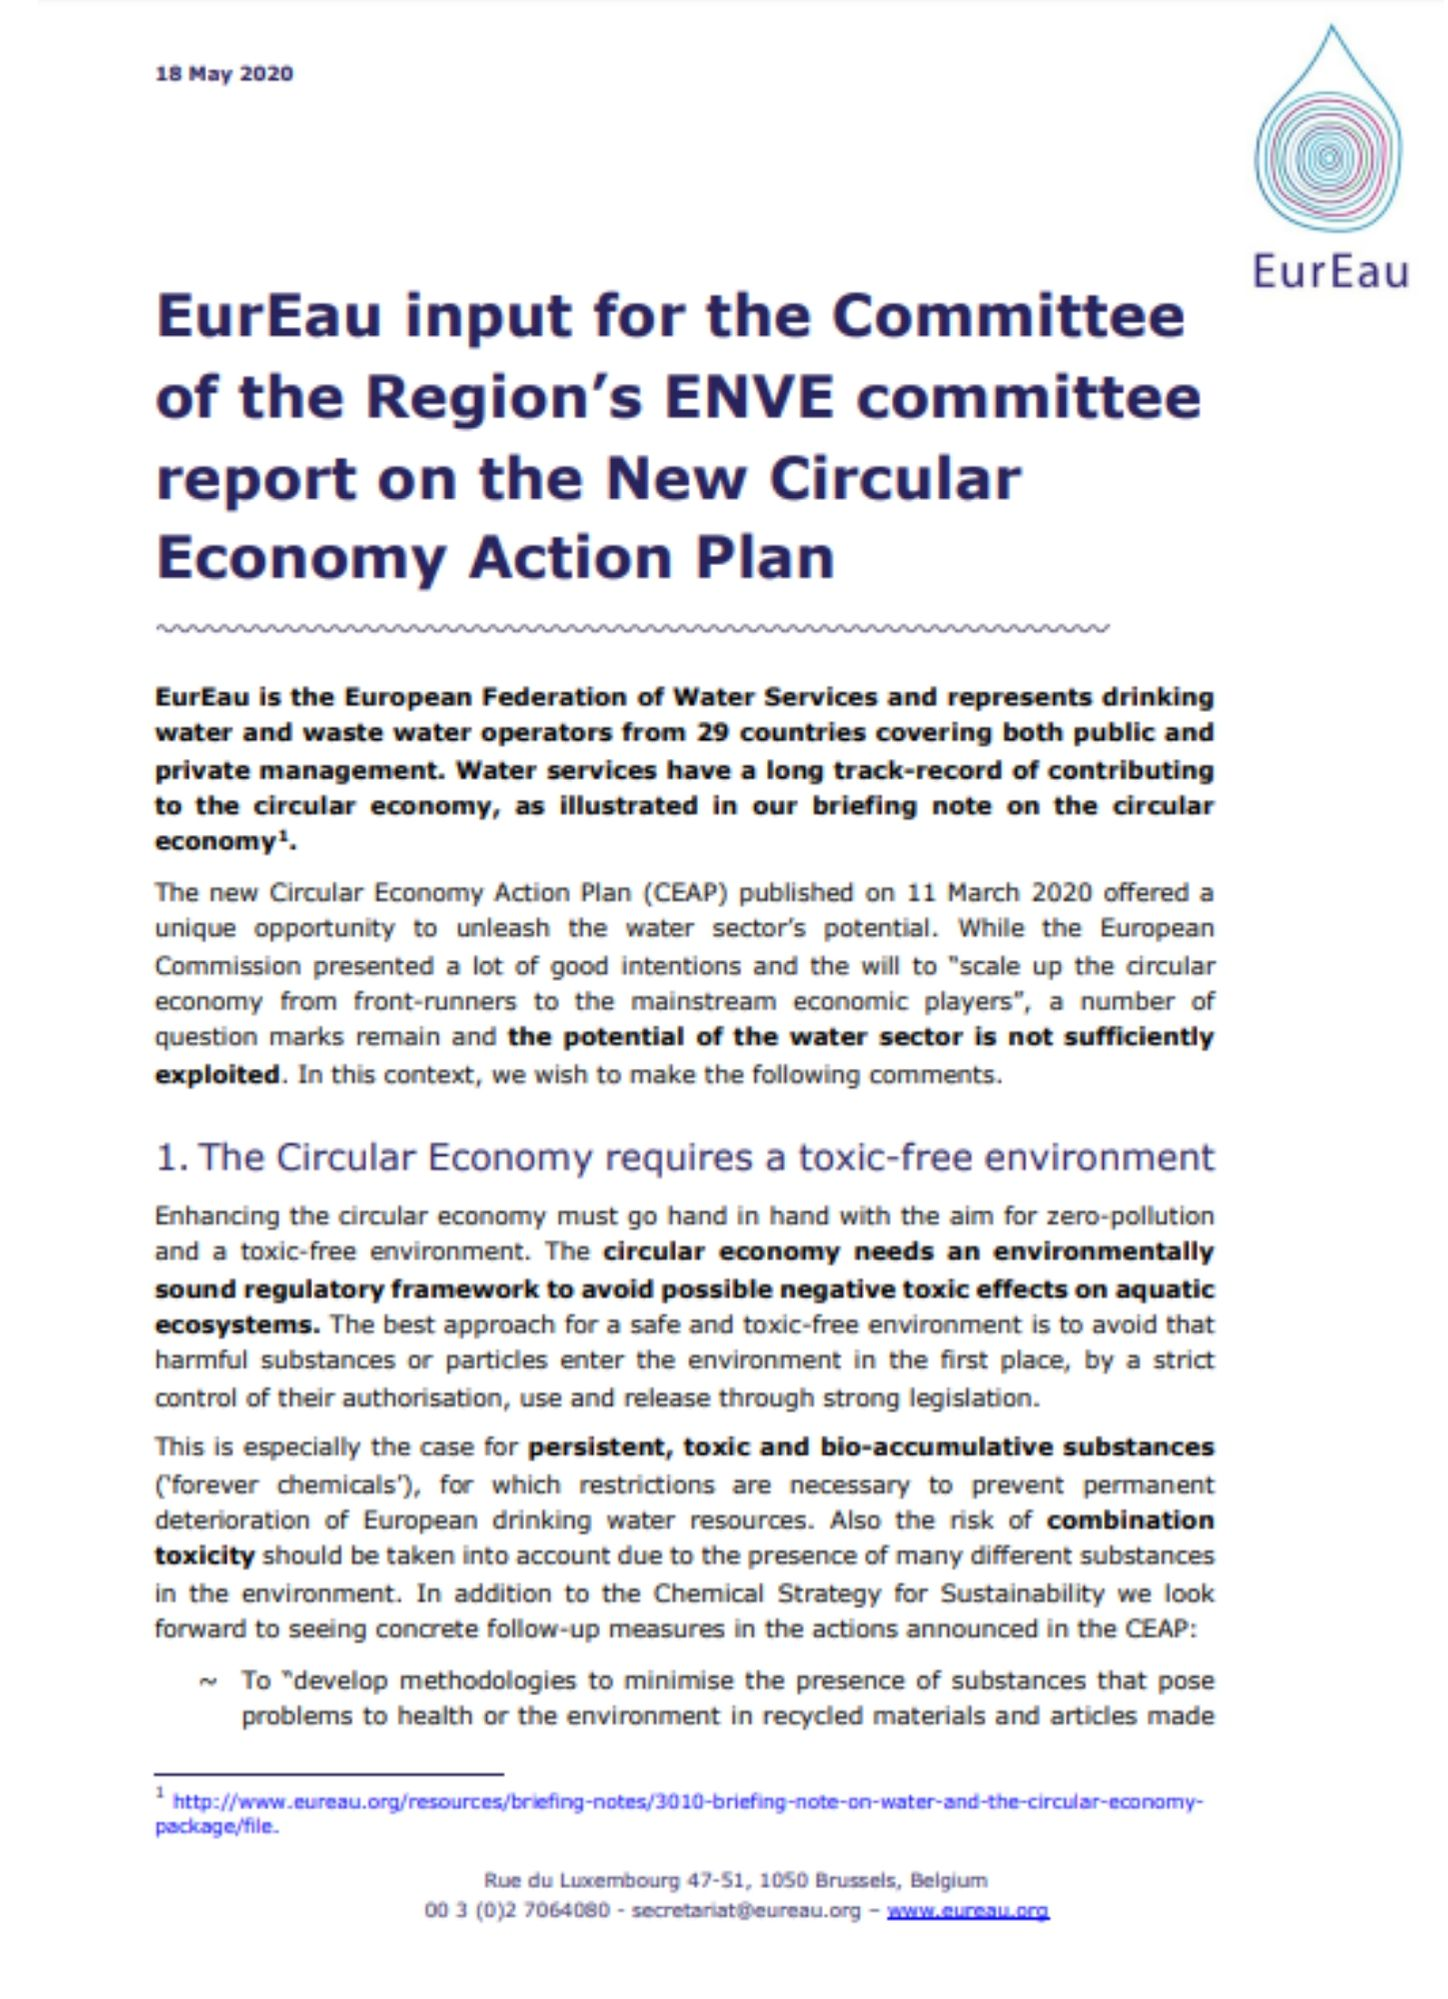 EurEau reaction to the Circular Economy Action Plan